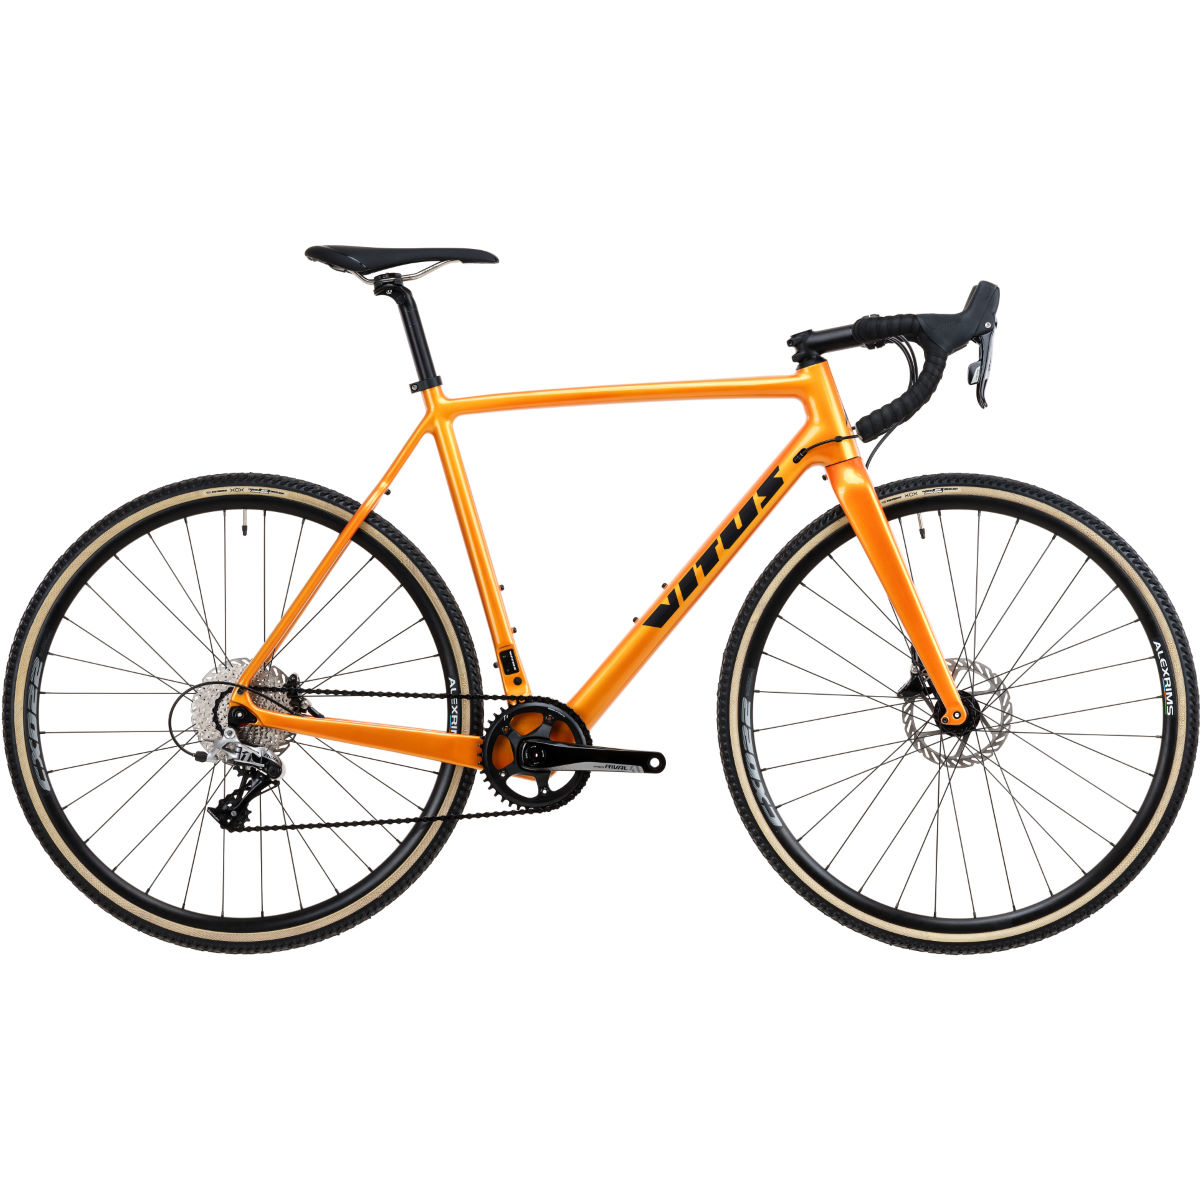 Image of Vélo de cyclo-cross Vitus Energie CR (Rival, 2020) - Small